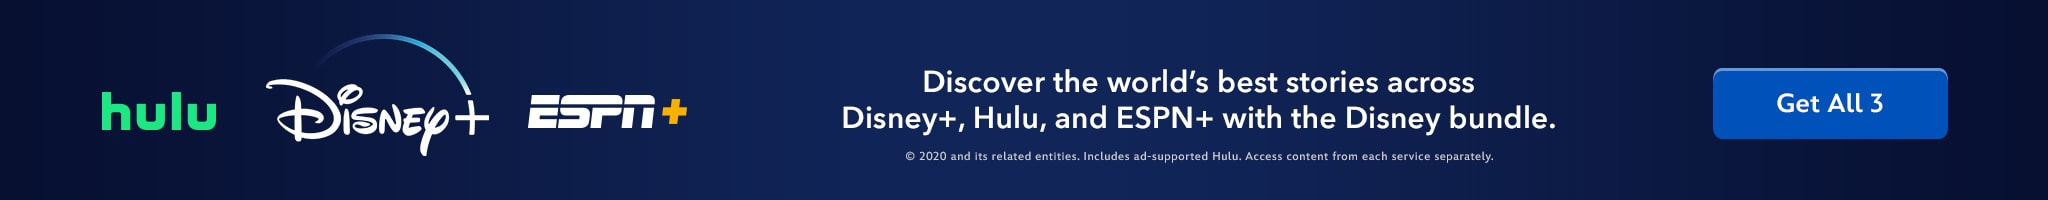 Disney+ | Hulu | ESPN+ | Discover the world's best stories across Disney+, Hulu, and ESPN+ with the Disney bundle. Get All 3.